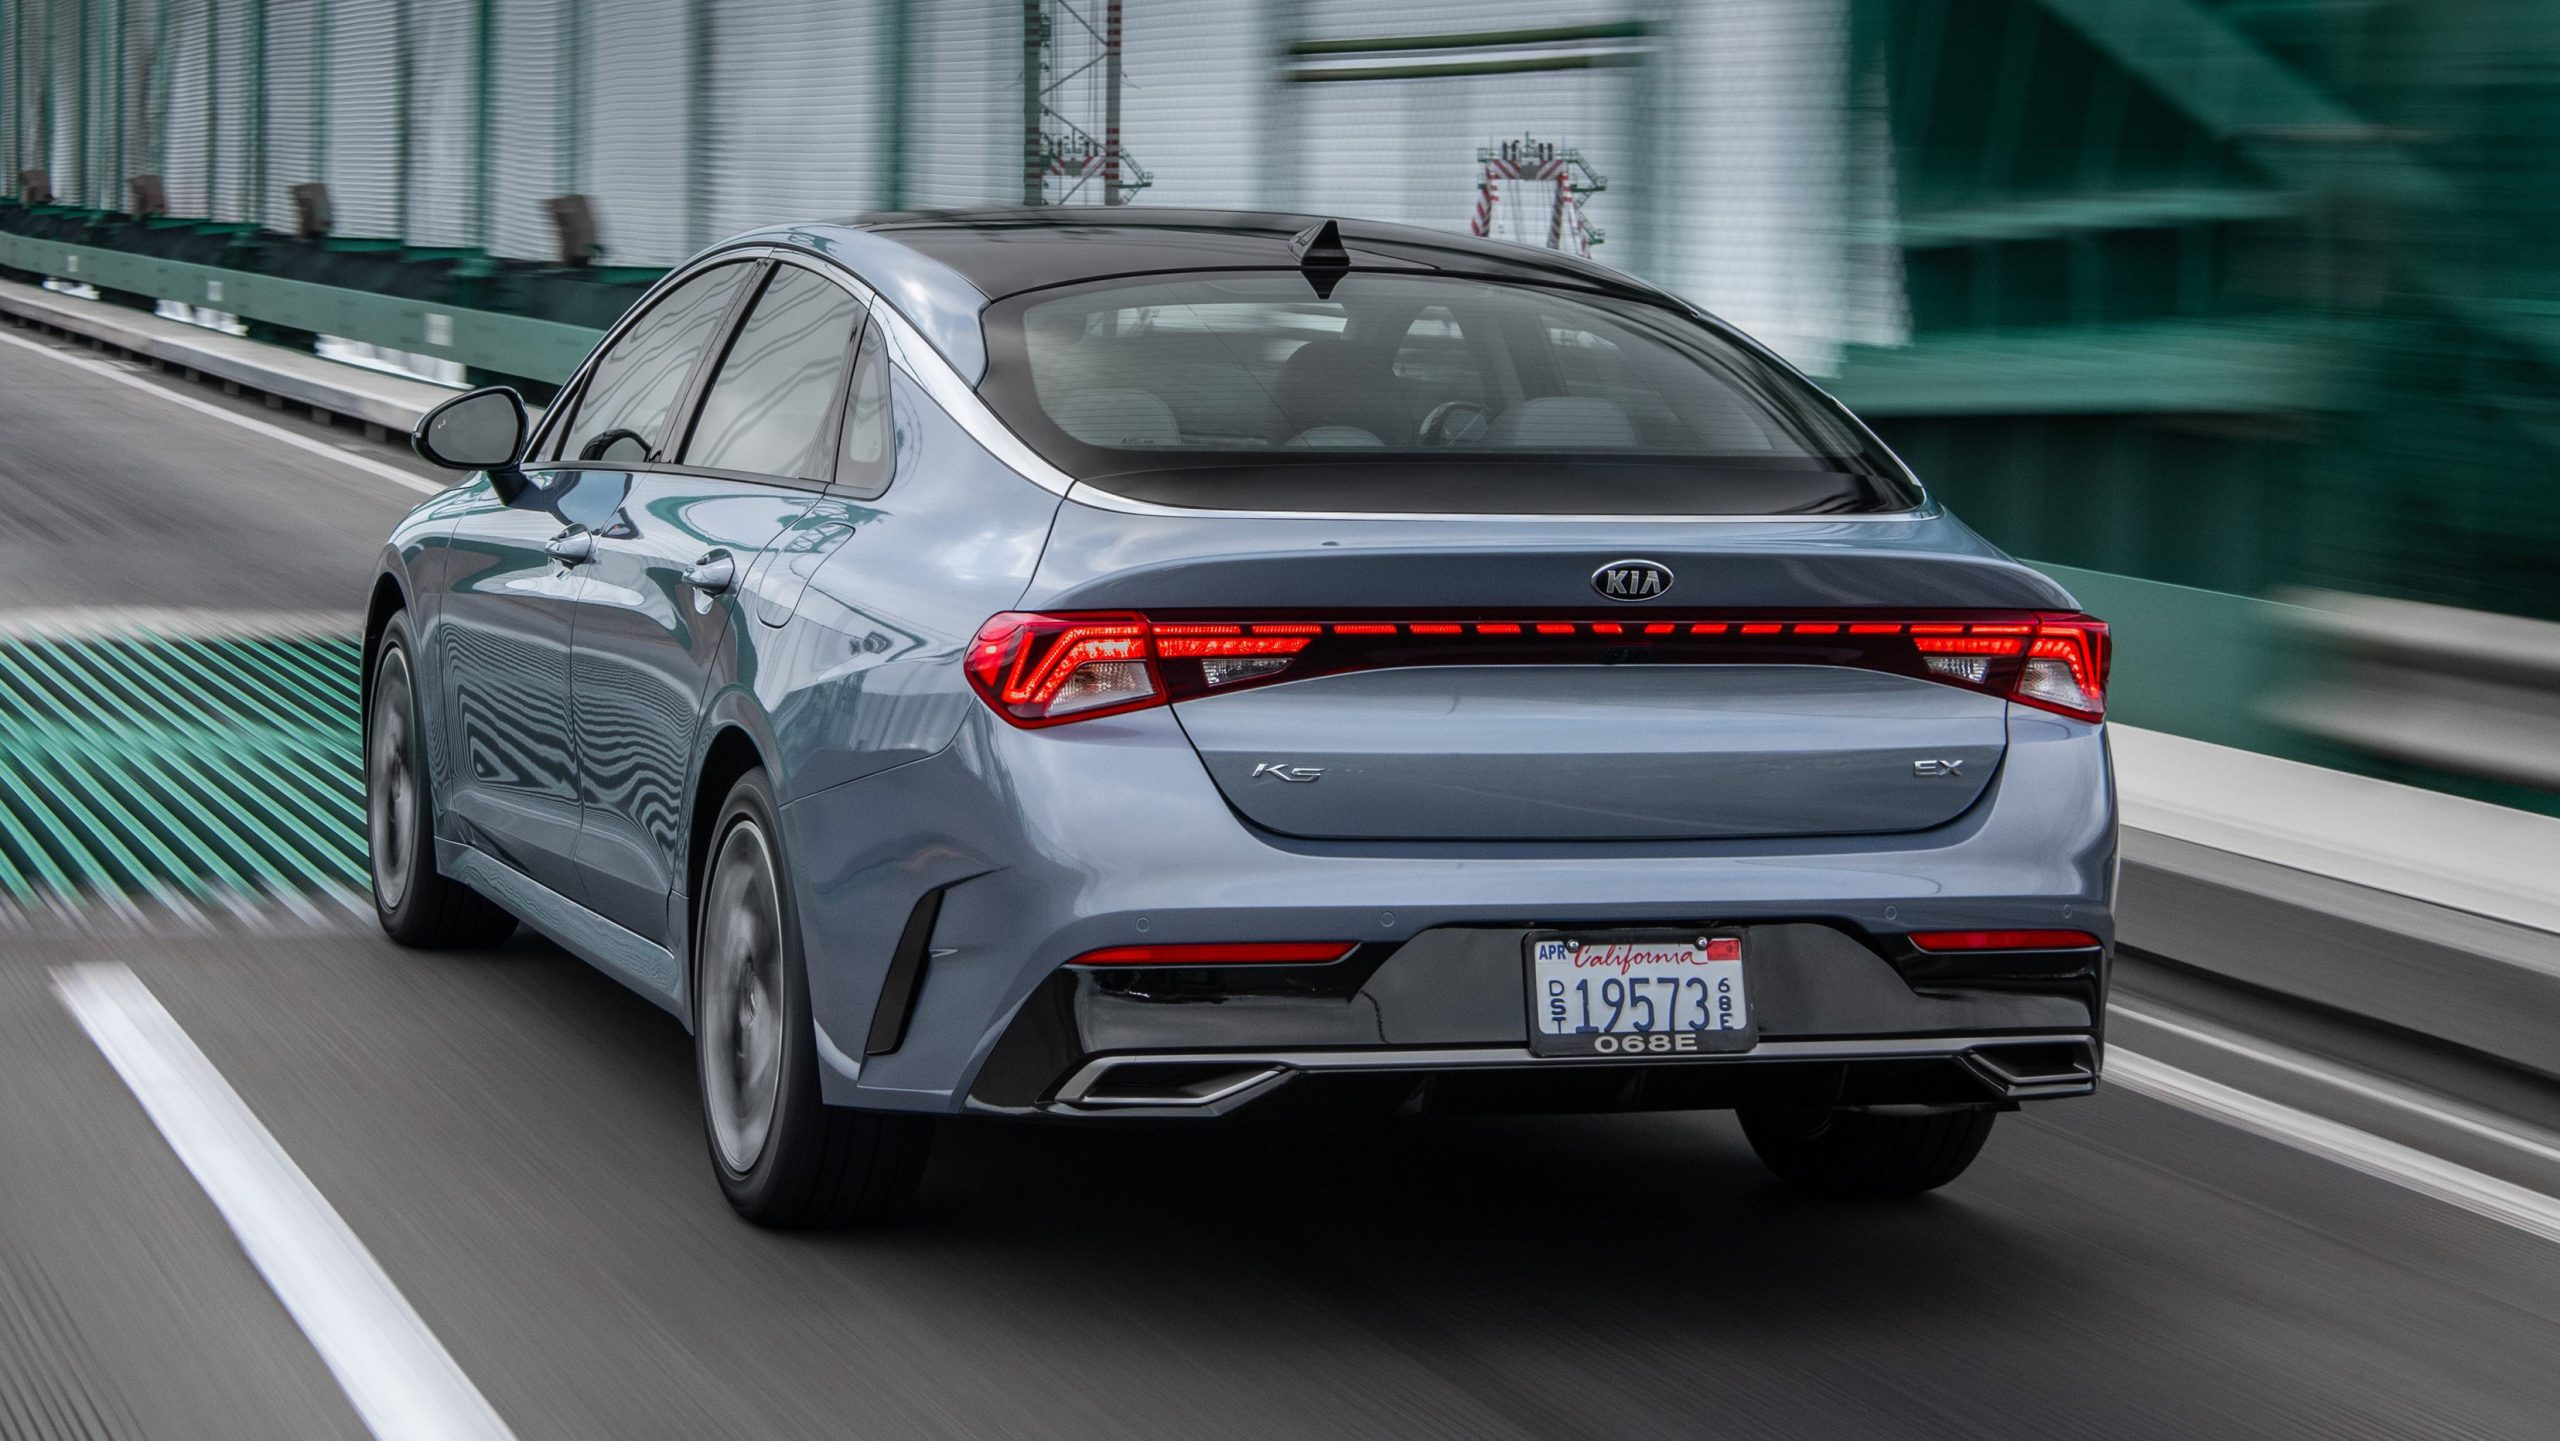 2021 Kia K5 First Drive|Driving impacts, requirements, rates